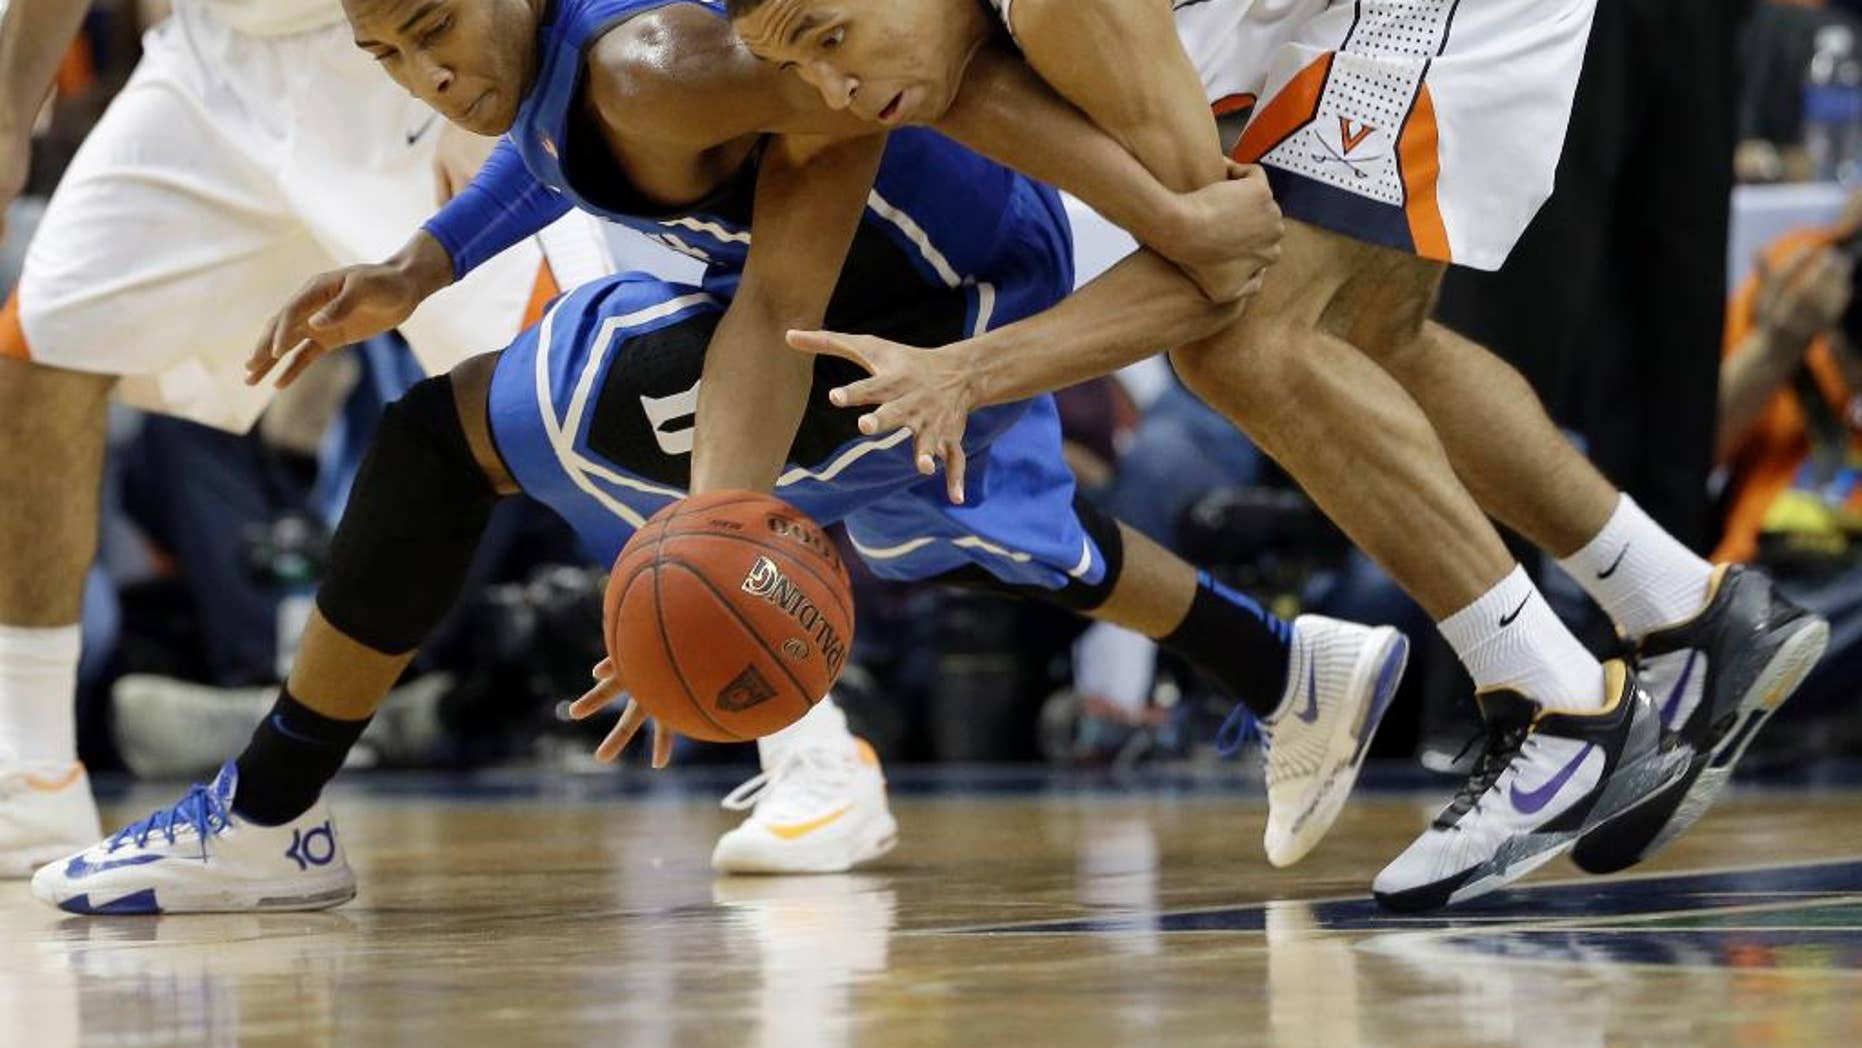 Duke's Rasheed Sulaimon, left, and Virginia's Malcolm Brogdon, right, chase a loose ball during the first half of an NCAA college basketball game in the championship of the Atlantic Coast Conference tournament in Greensboro, N.C., Sunday, March 16, 2014. (AP Photo/Gerry Broome)